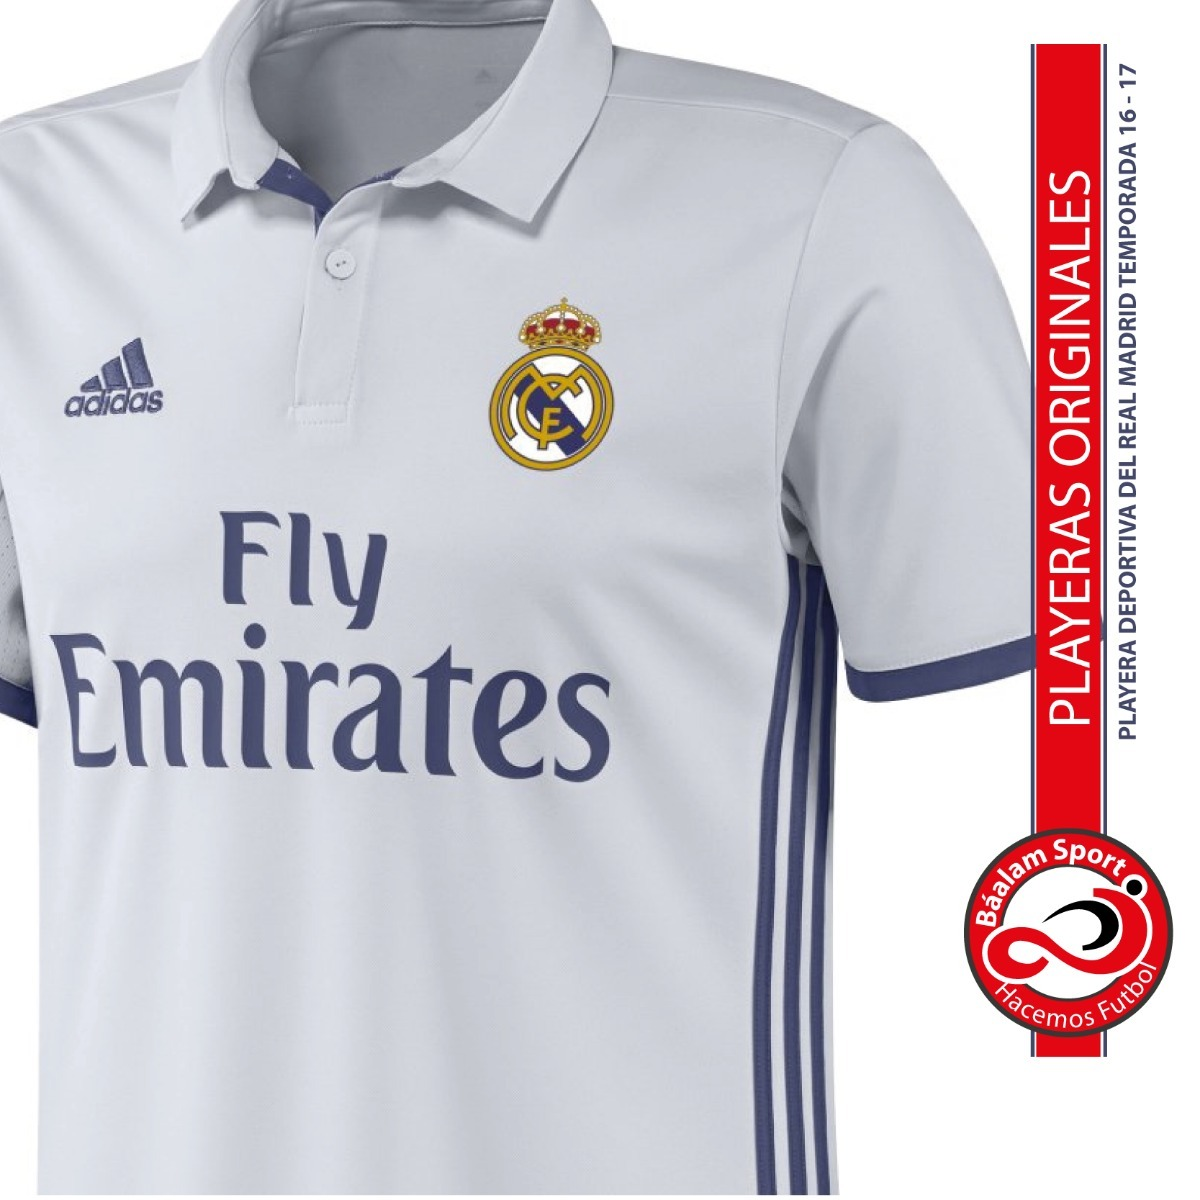 Playera Real Madrid -   300.00 en Mercado Libre cdb3217d1c2d5